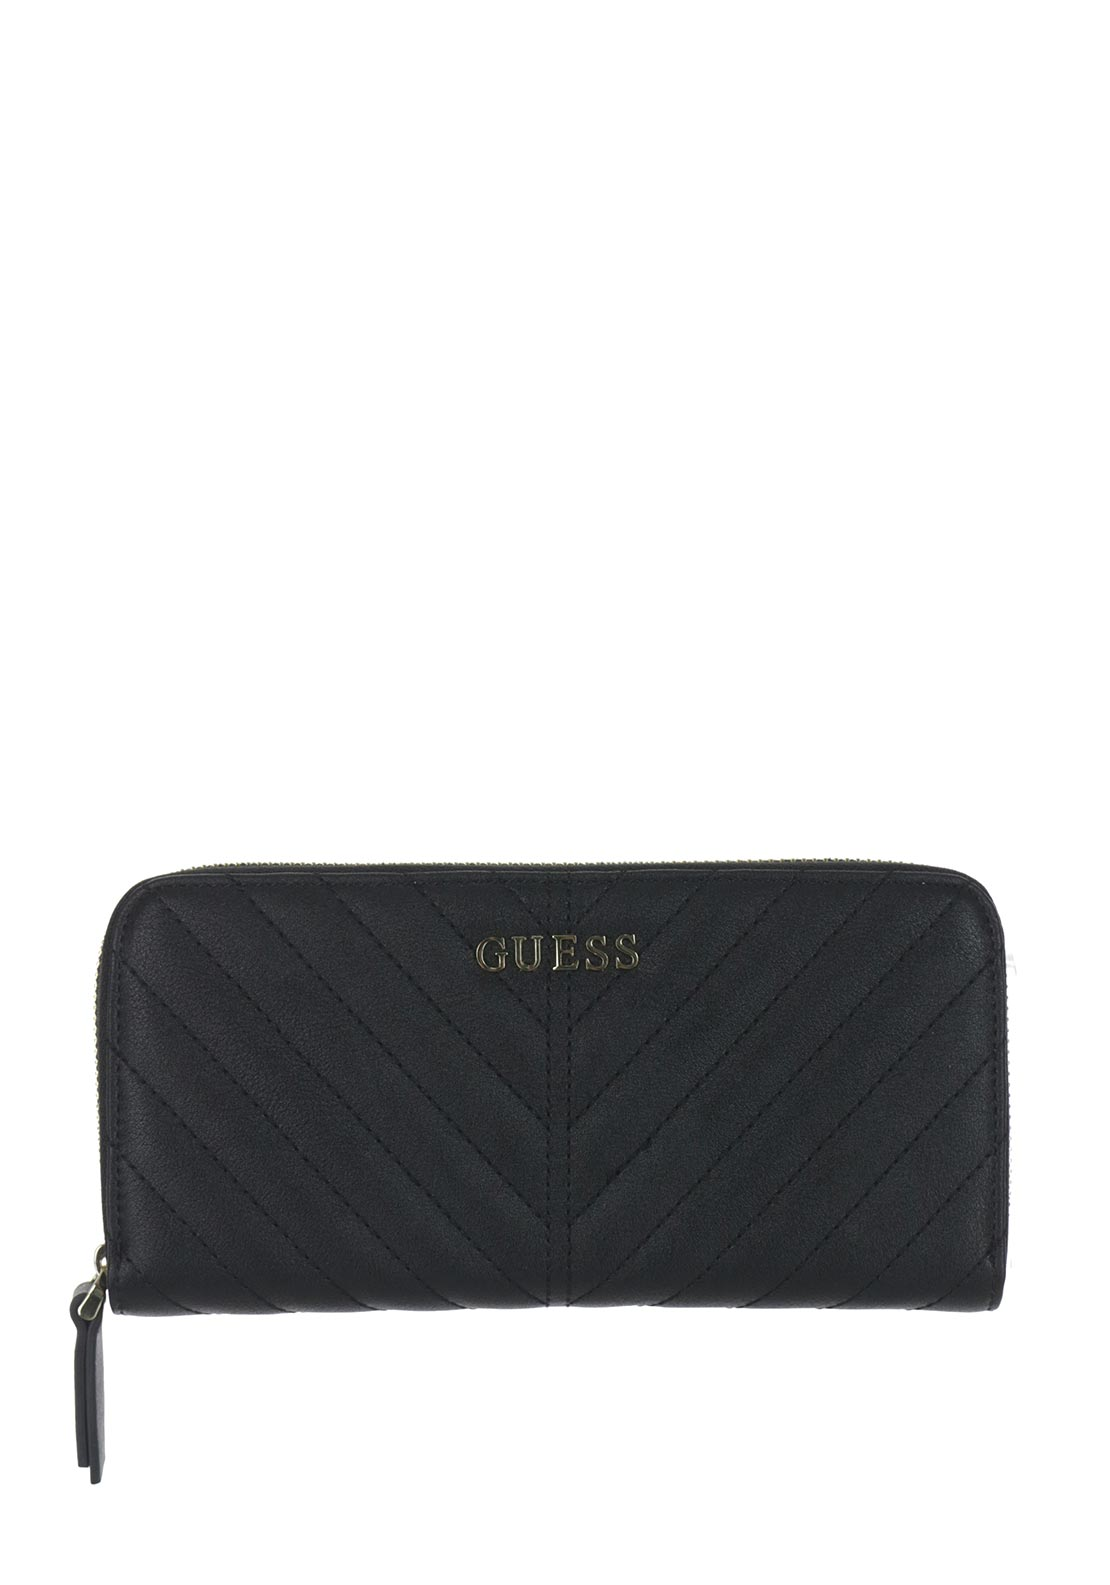 Guess Addison Quilted Large Zip Around Purse, Black